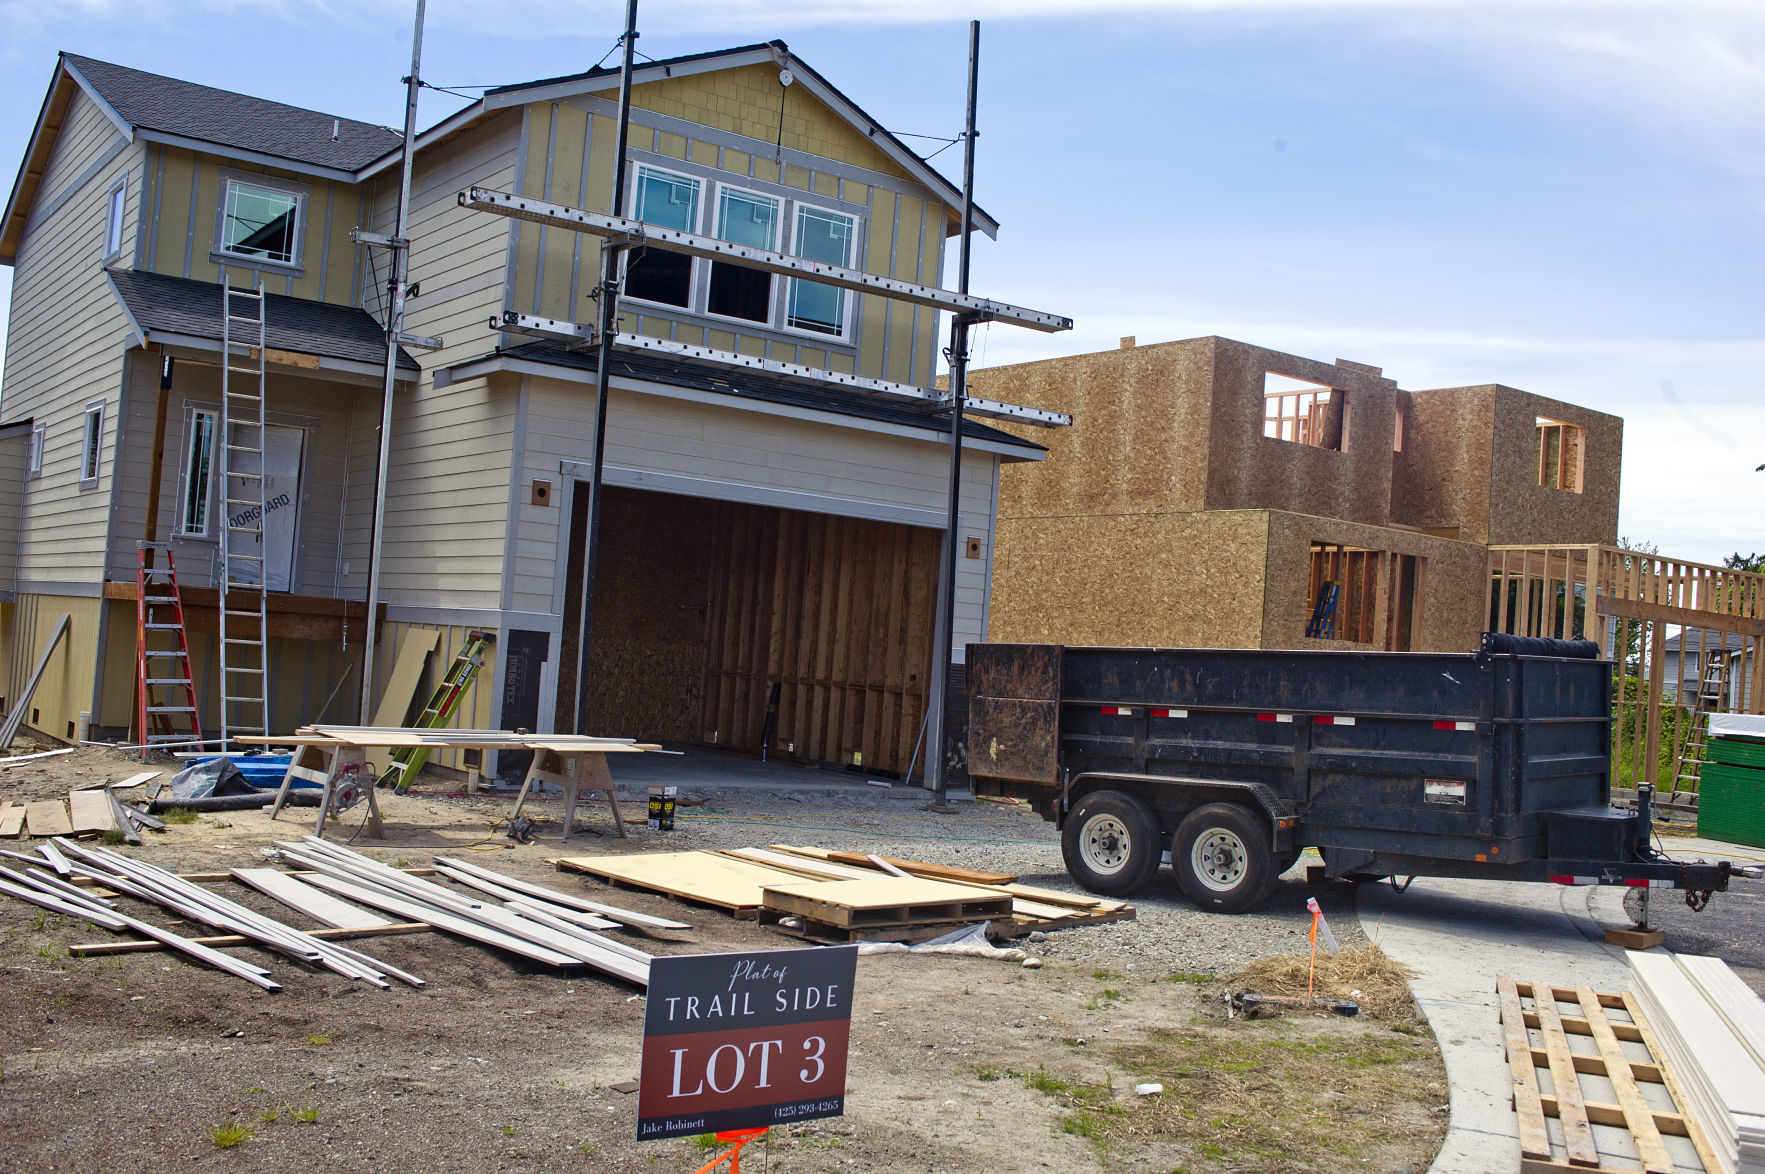 Bidding Wars Becoming More Common As Demand Outpaces Supply In Local Real Estate Market News Goskagit Com